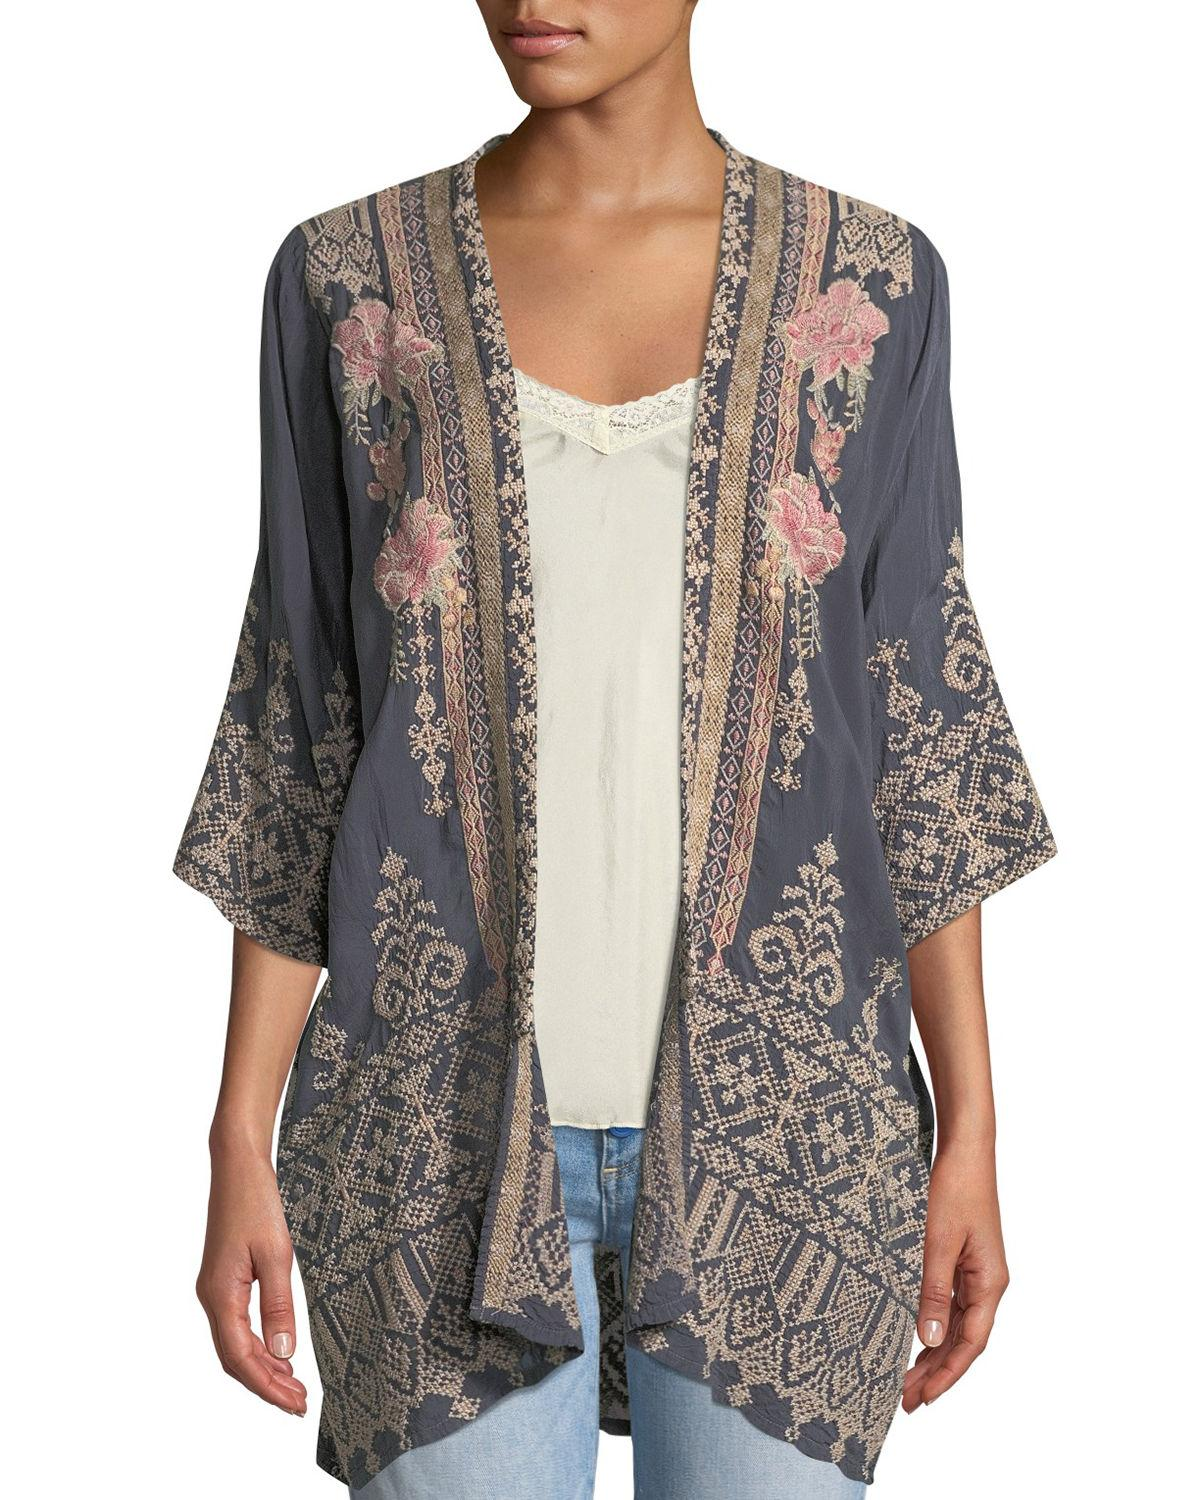 1edc9faf0e76d Lyst - Johnny Was Helena Embroidered Kimono in Black - Save 10%